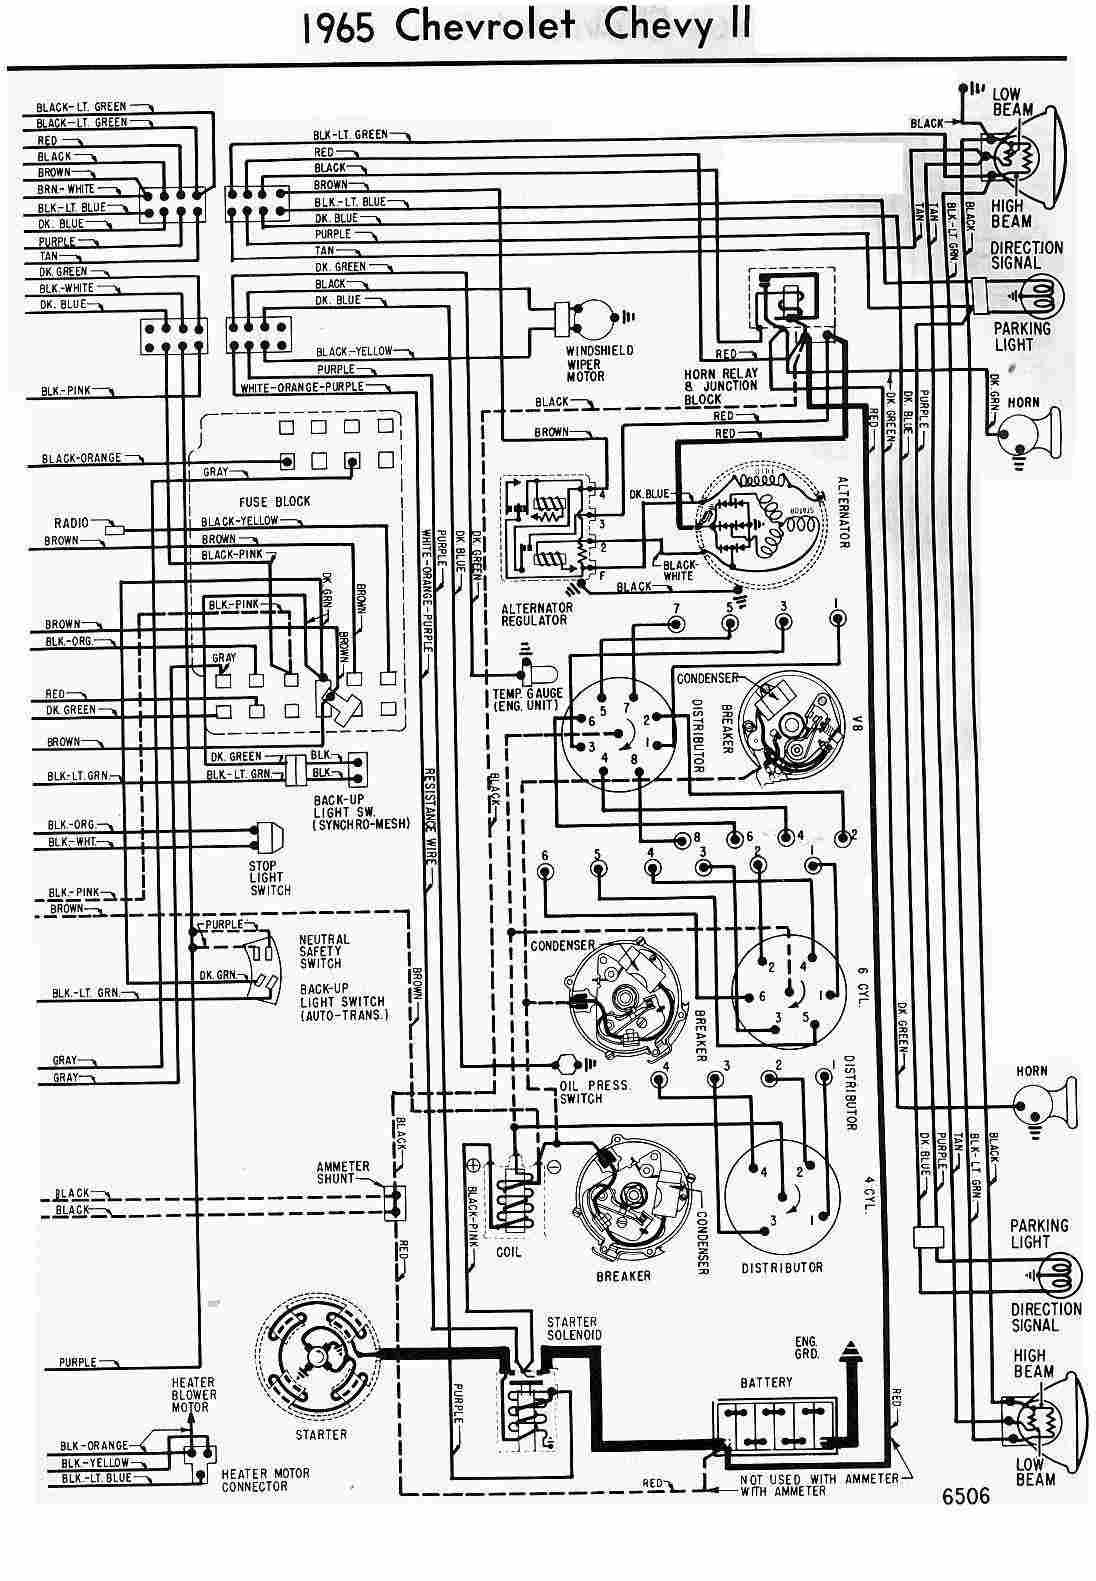 69 chevelle under dash wiring free download wiring diagram schematic rh sellfie co